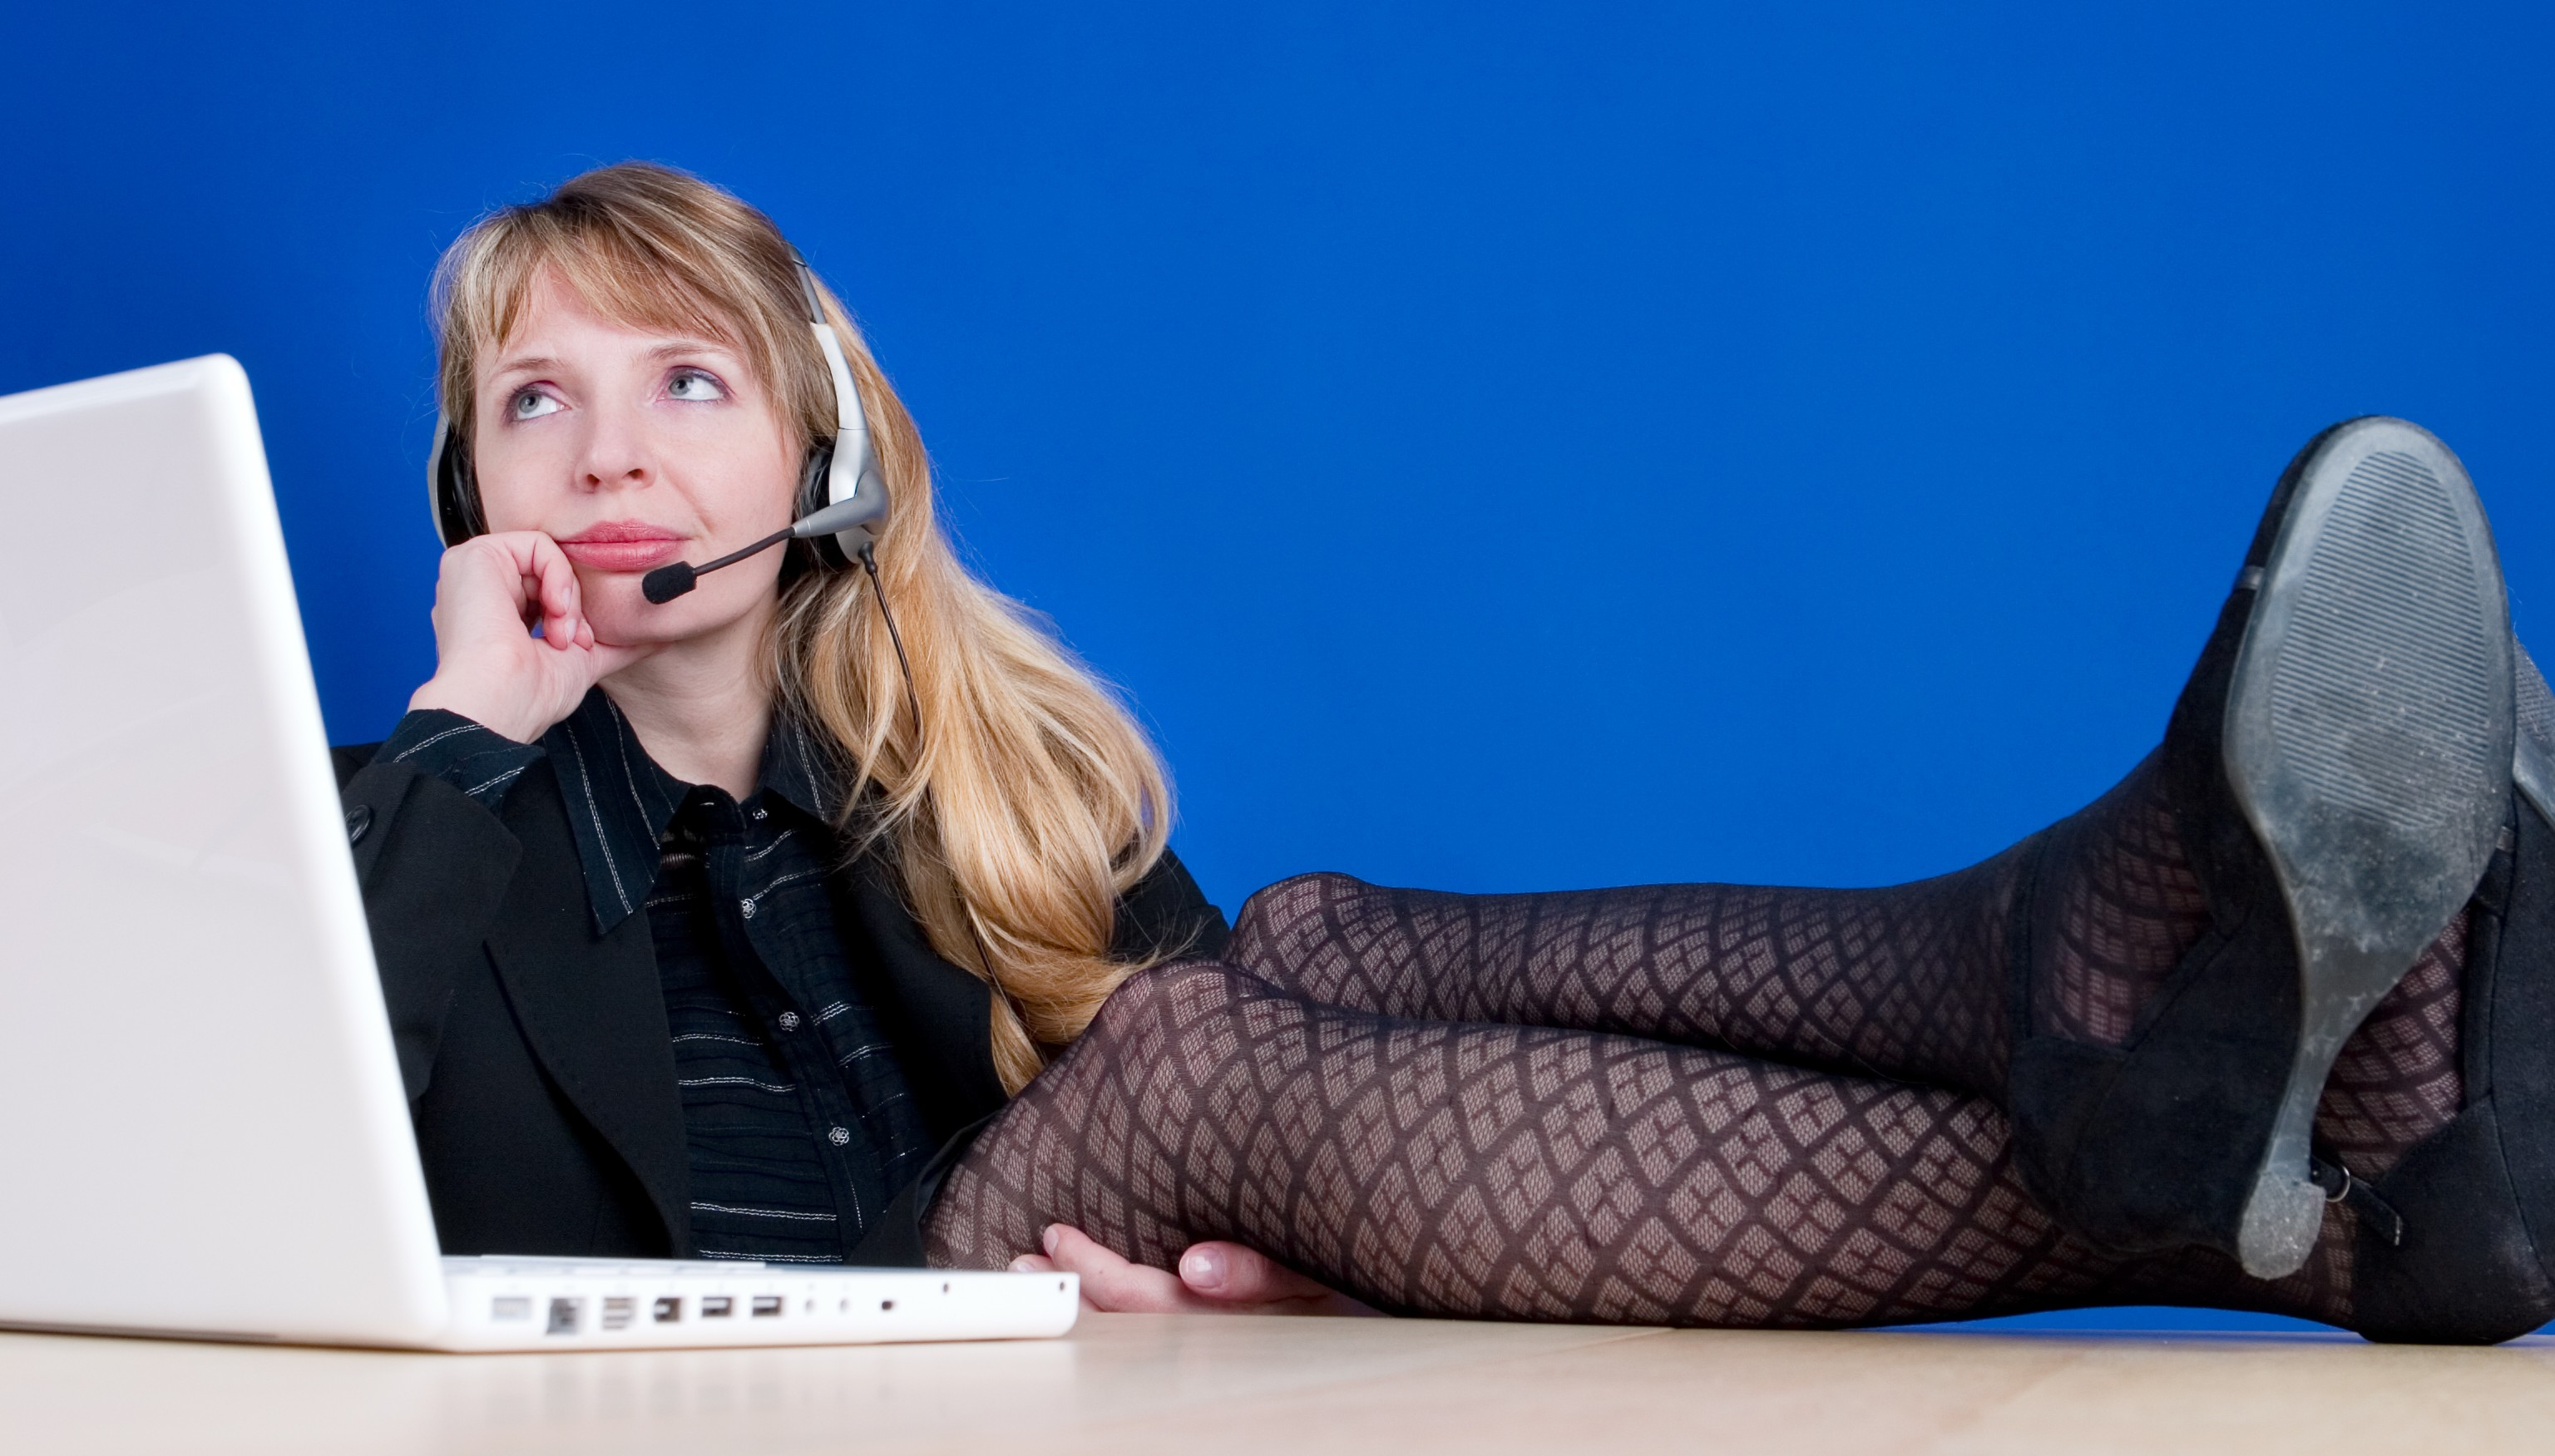 10 Ways to Avoid Bad Customer Service